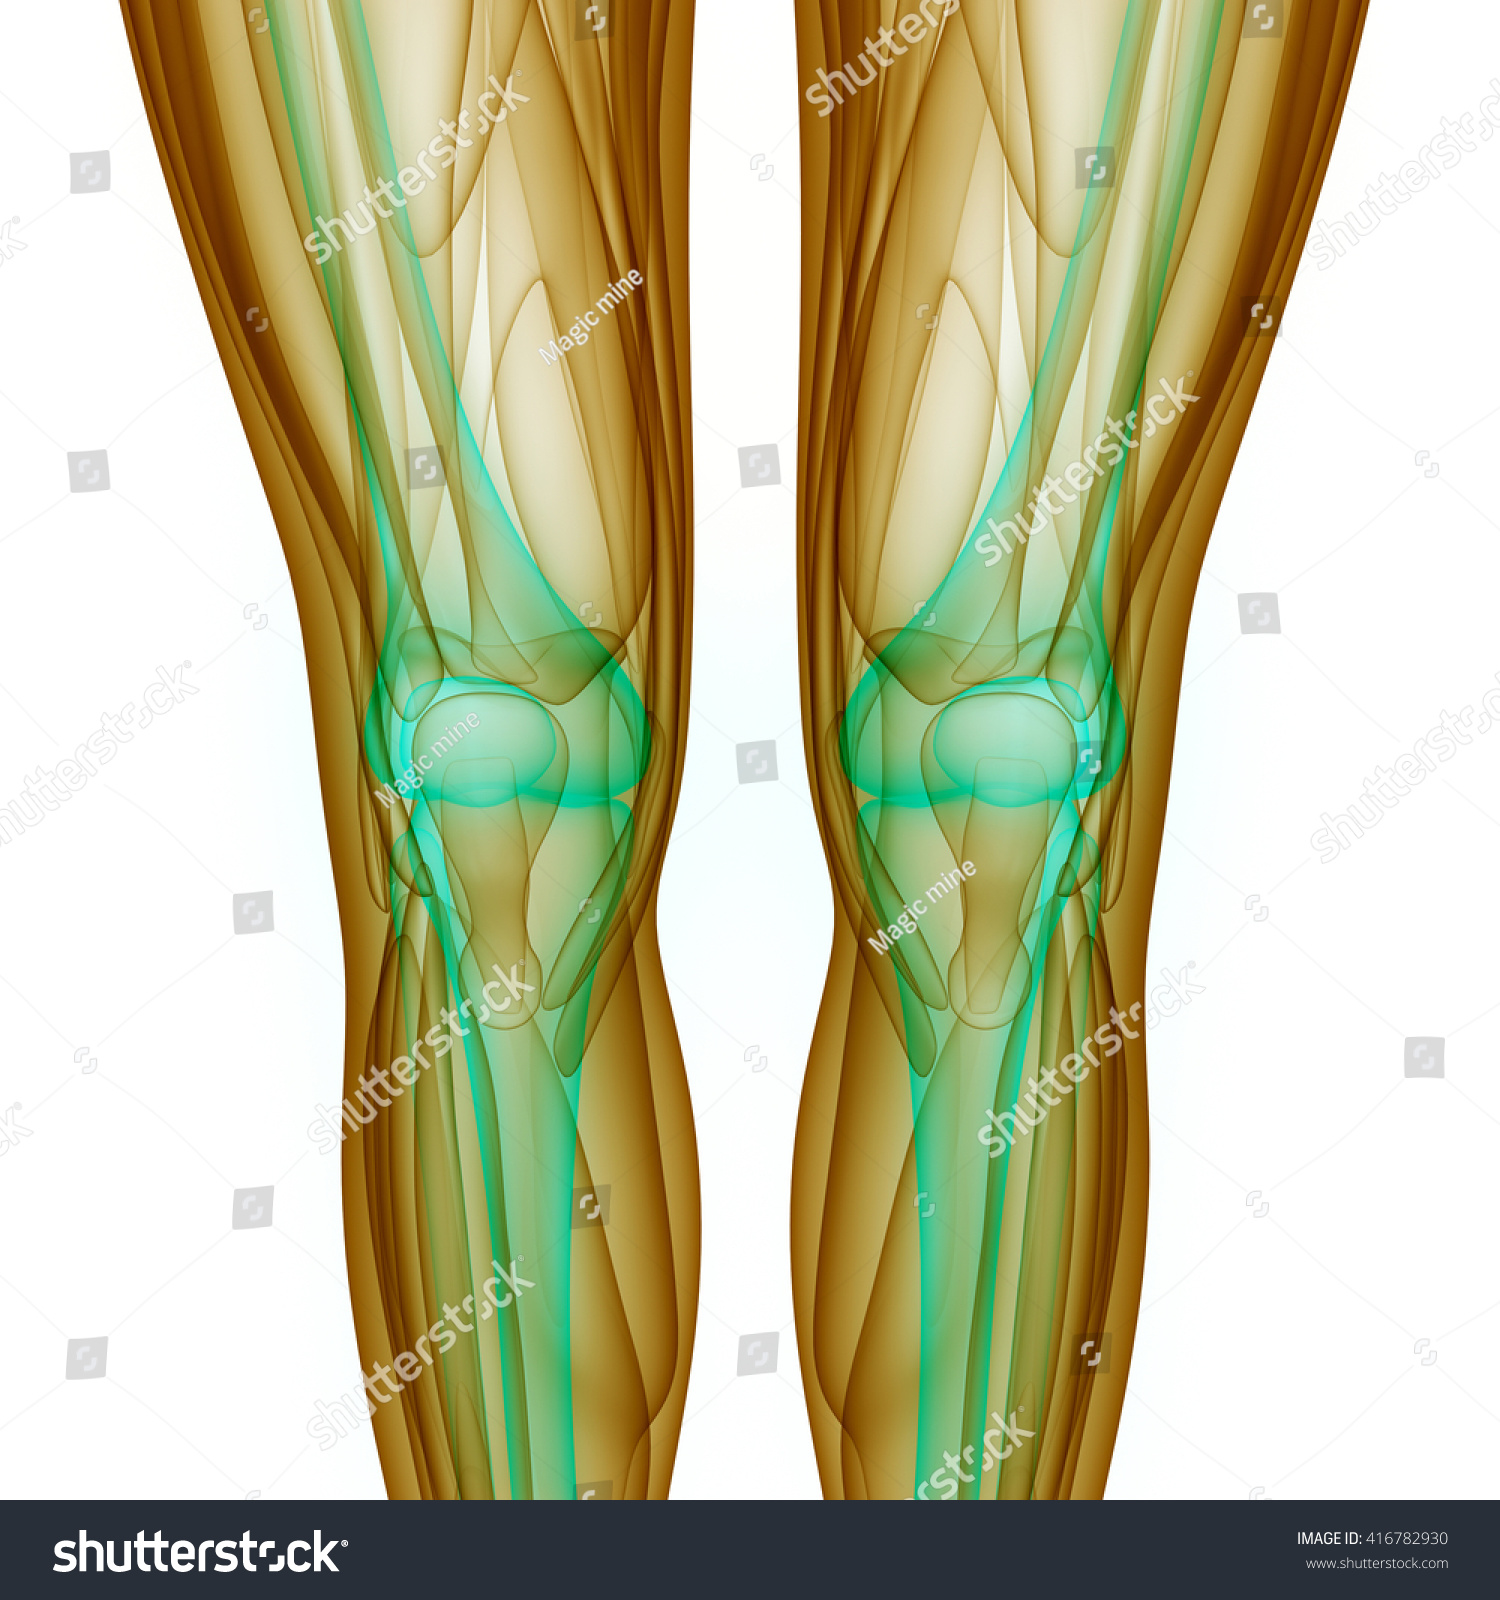 Royalty Free Stock Illustration Of Knee Joints Muscles 3 D Stock